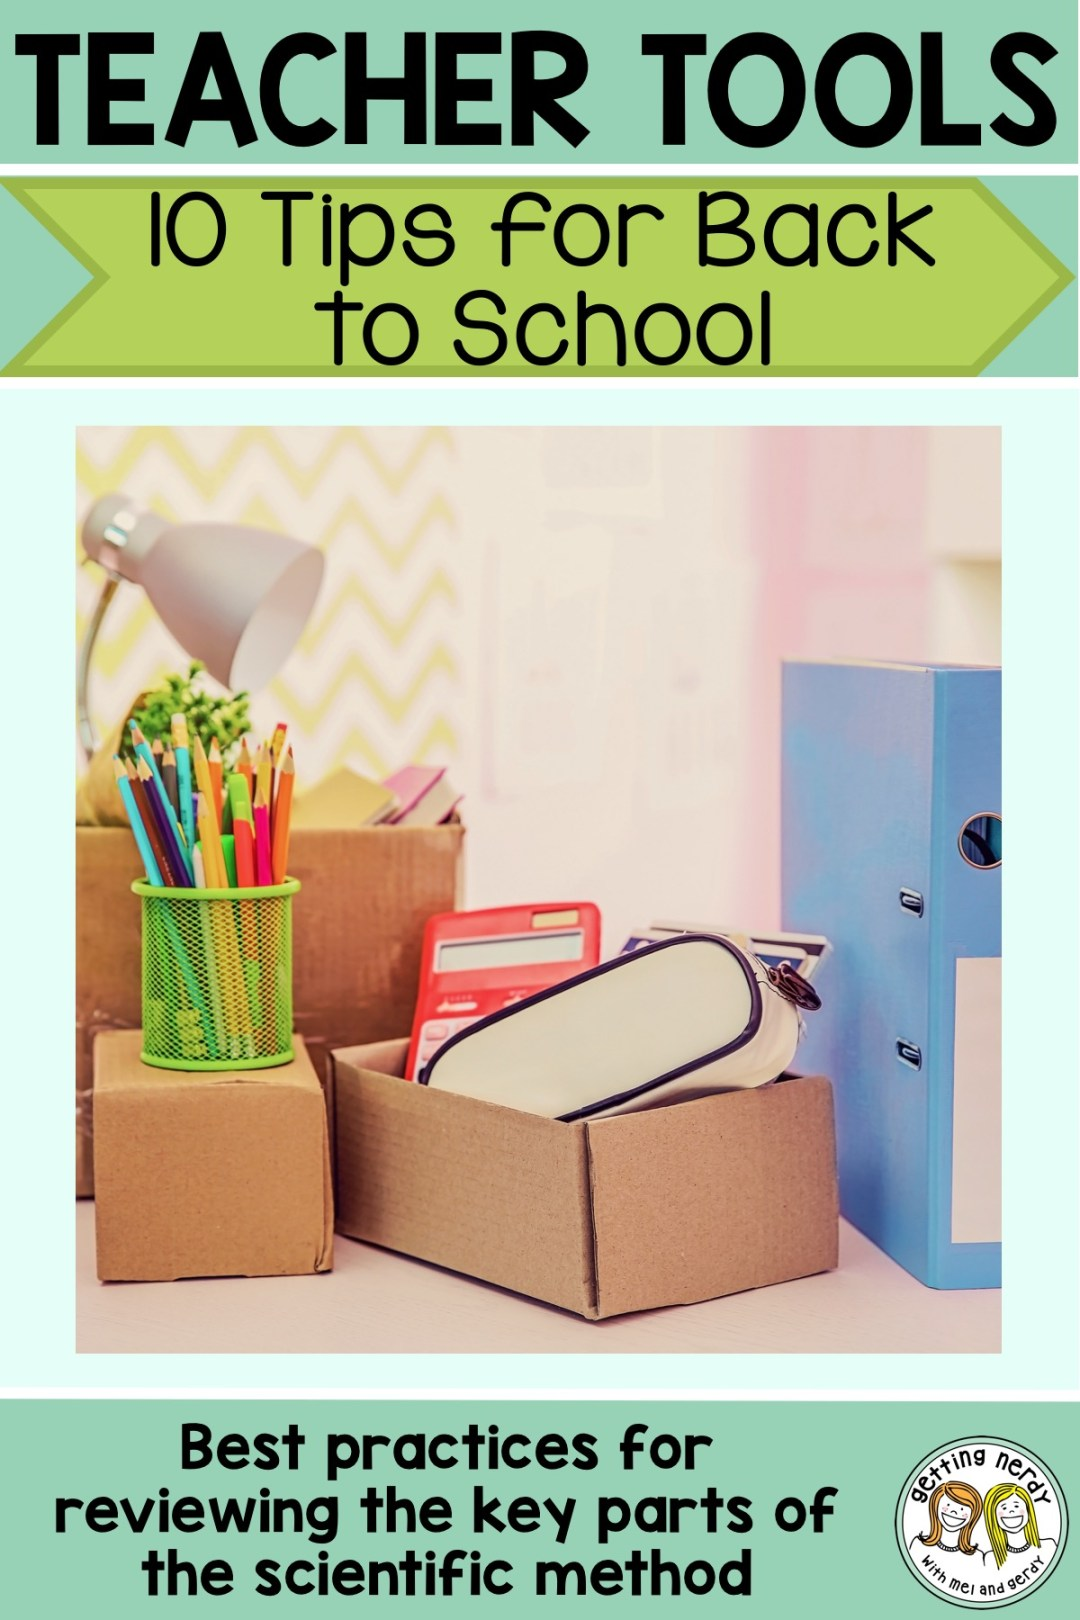 Check out our tips for a smooth transition back to school #gettingnerdyscience #backtoschool